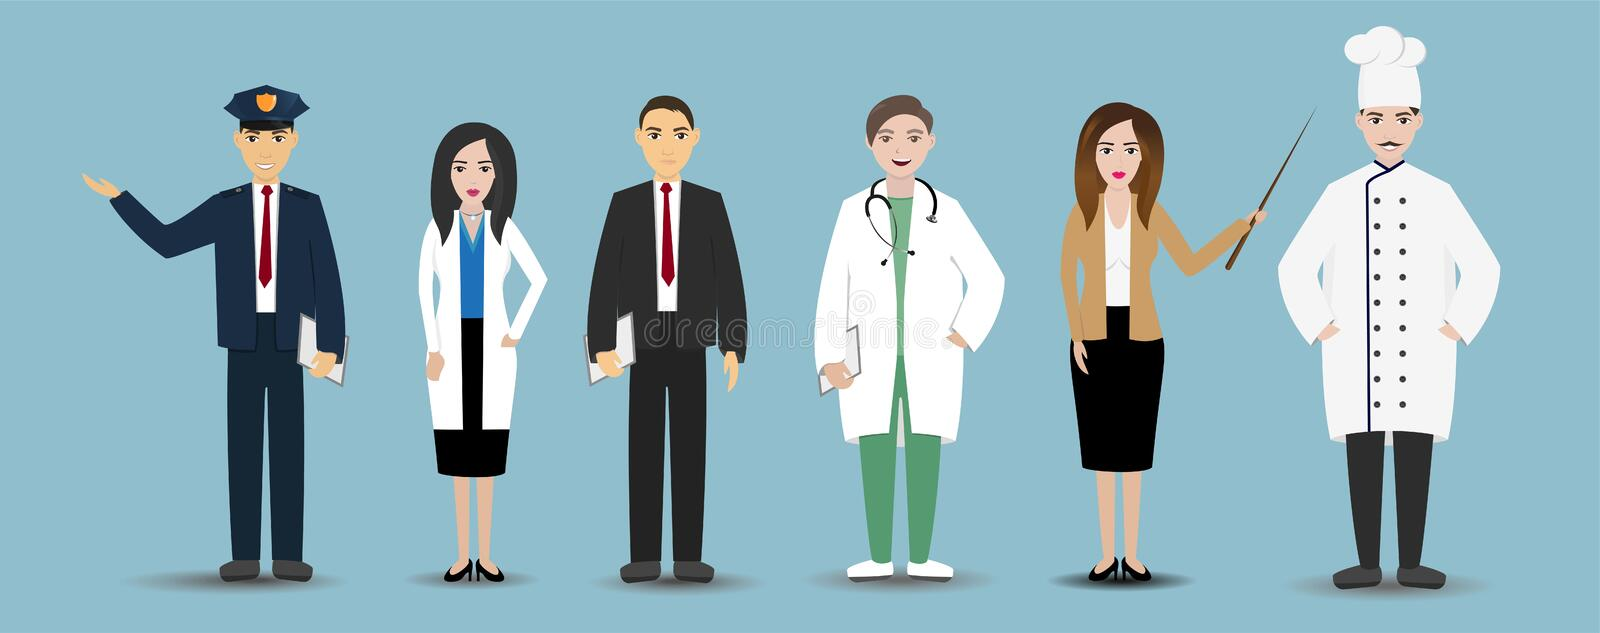 Man and woman different occupations employees in uniform, group of workers, people team profession set cartoon. royalty free illustration